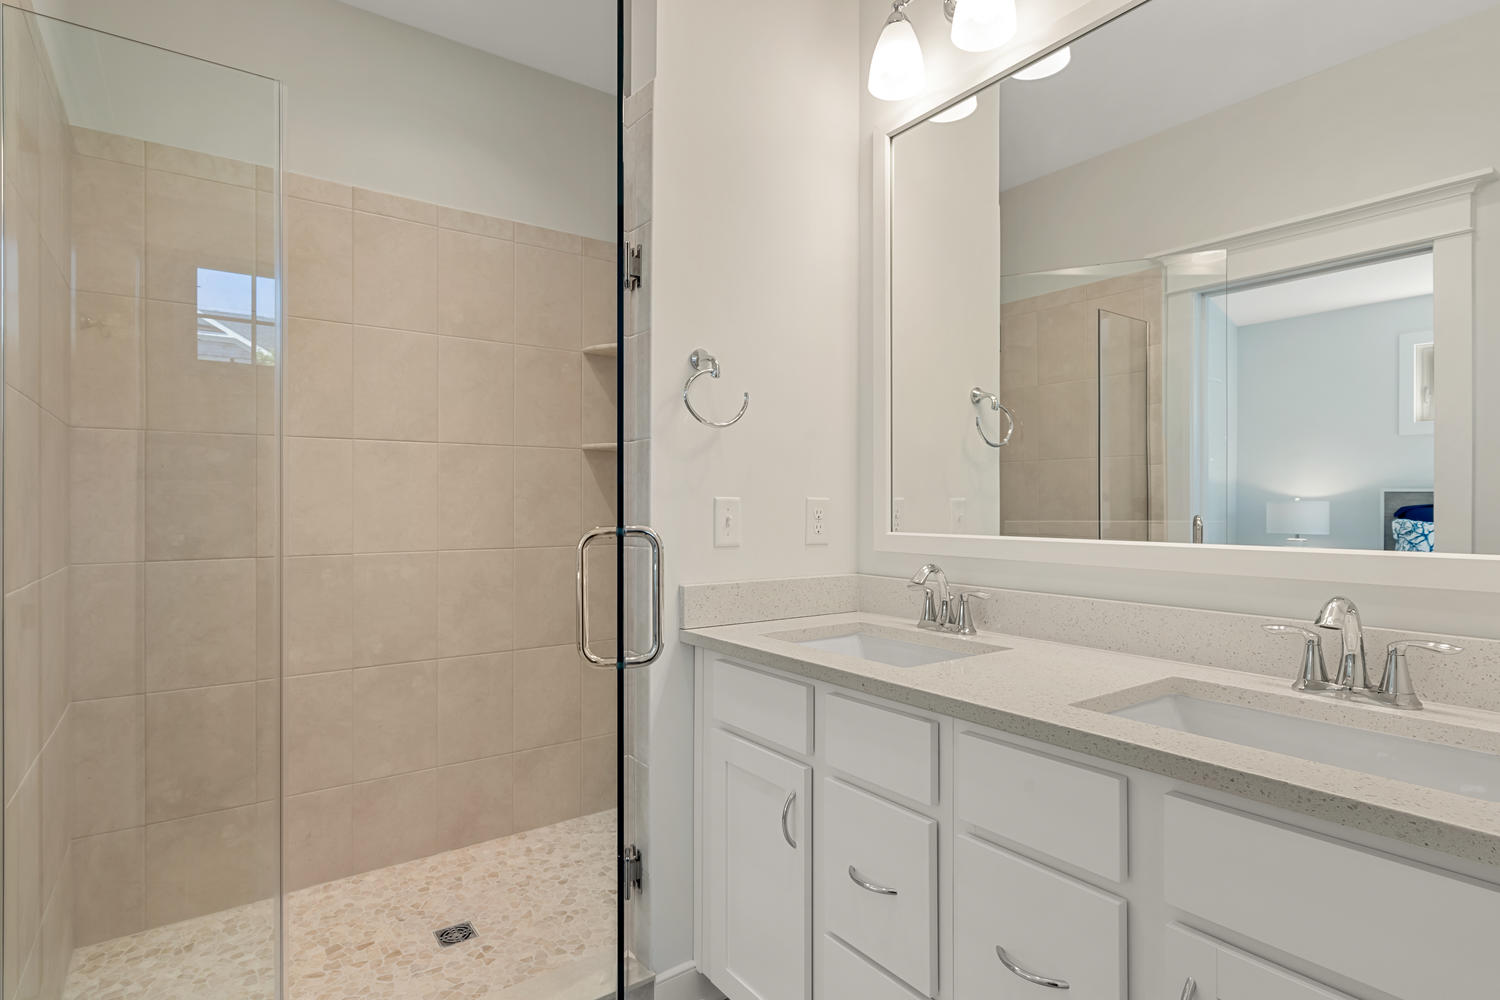 Guest Bath with Double Vanity Sink and White Cabinets